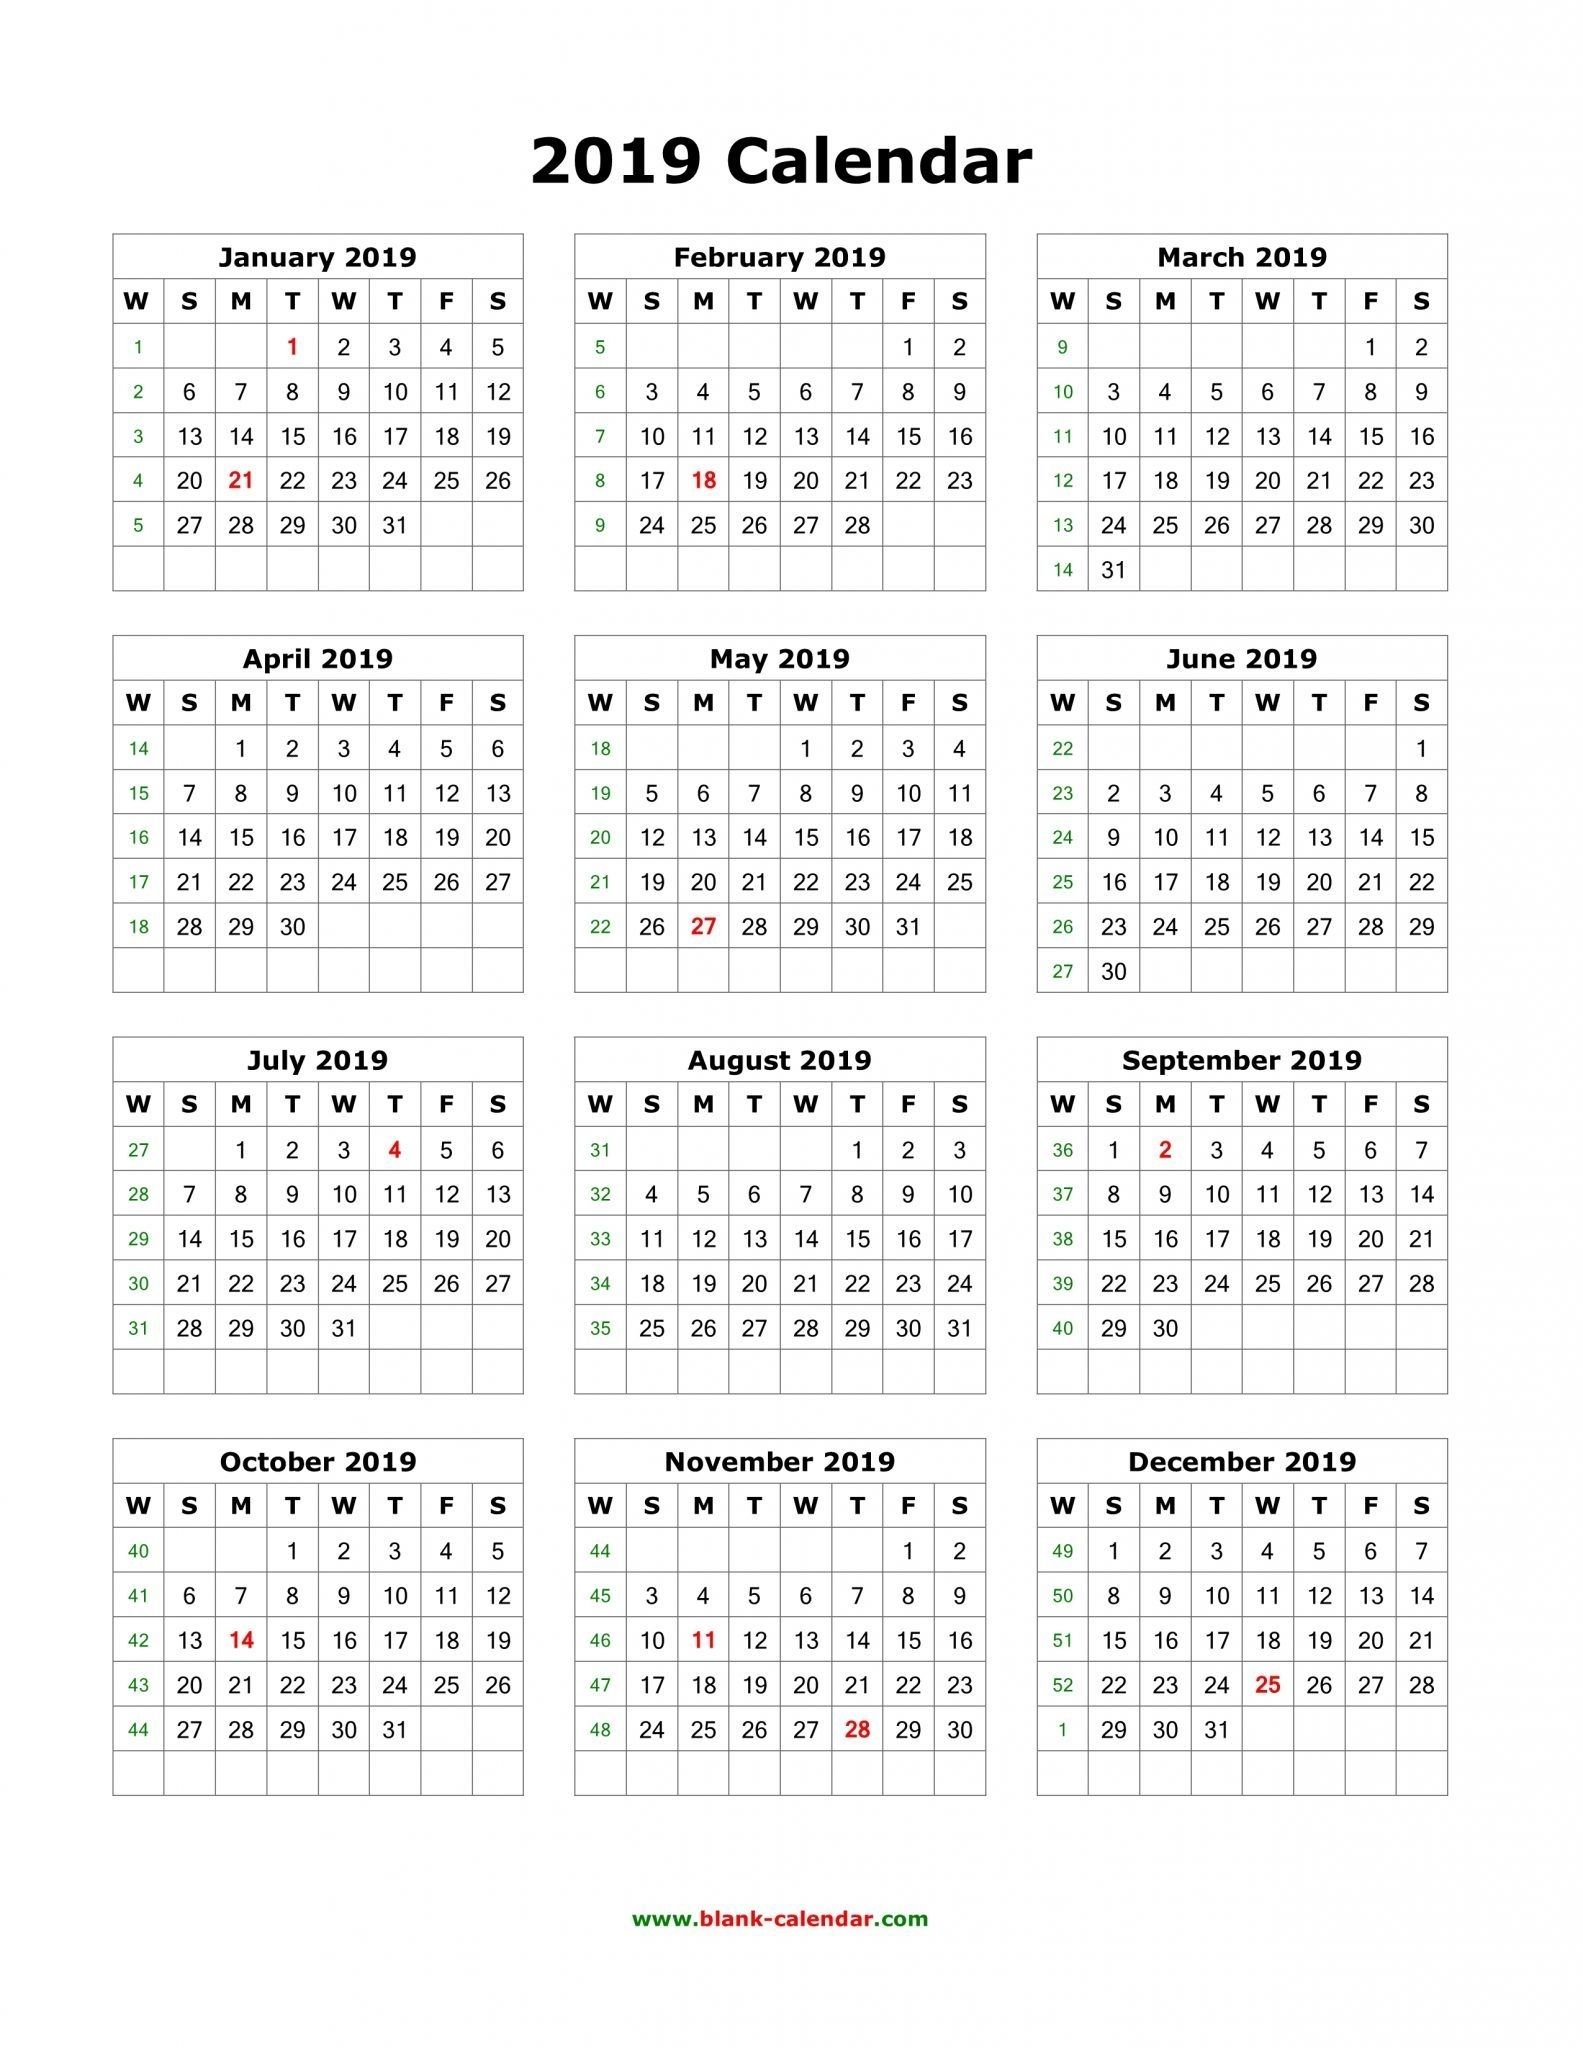 Download Blank 2019 Calendar Templates | 12 Month Calendar In One in 12 Month Calendar Print Out